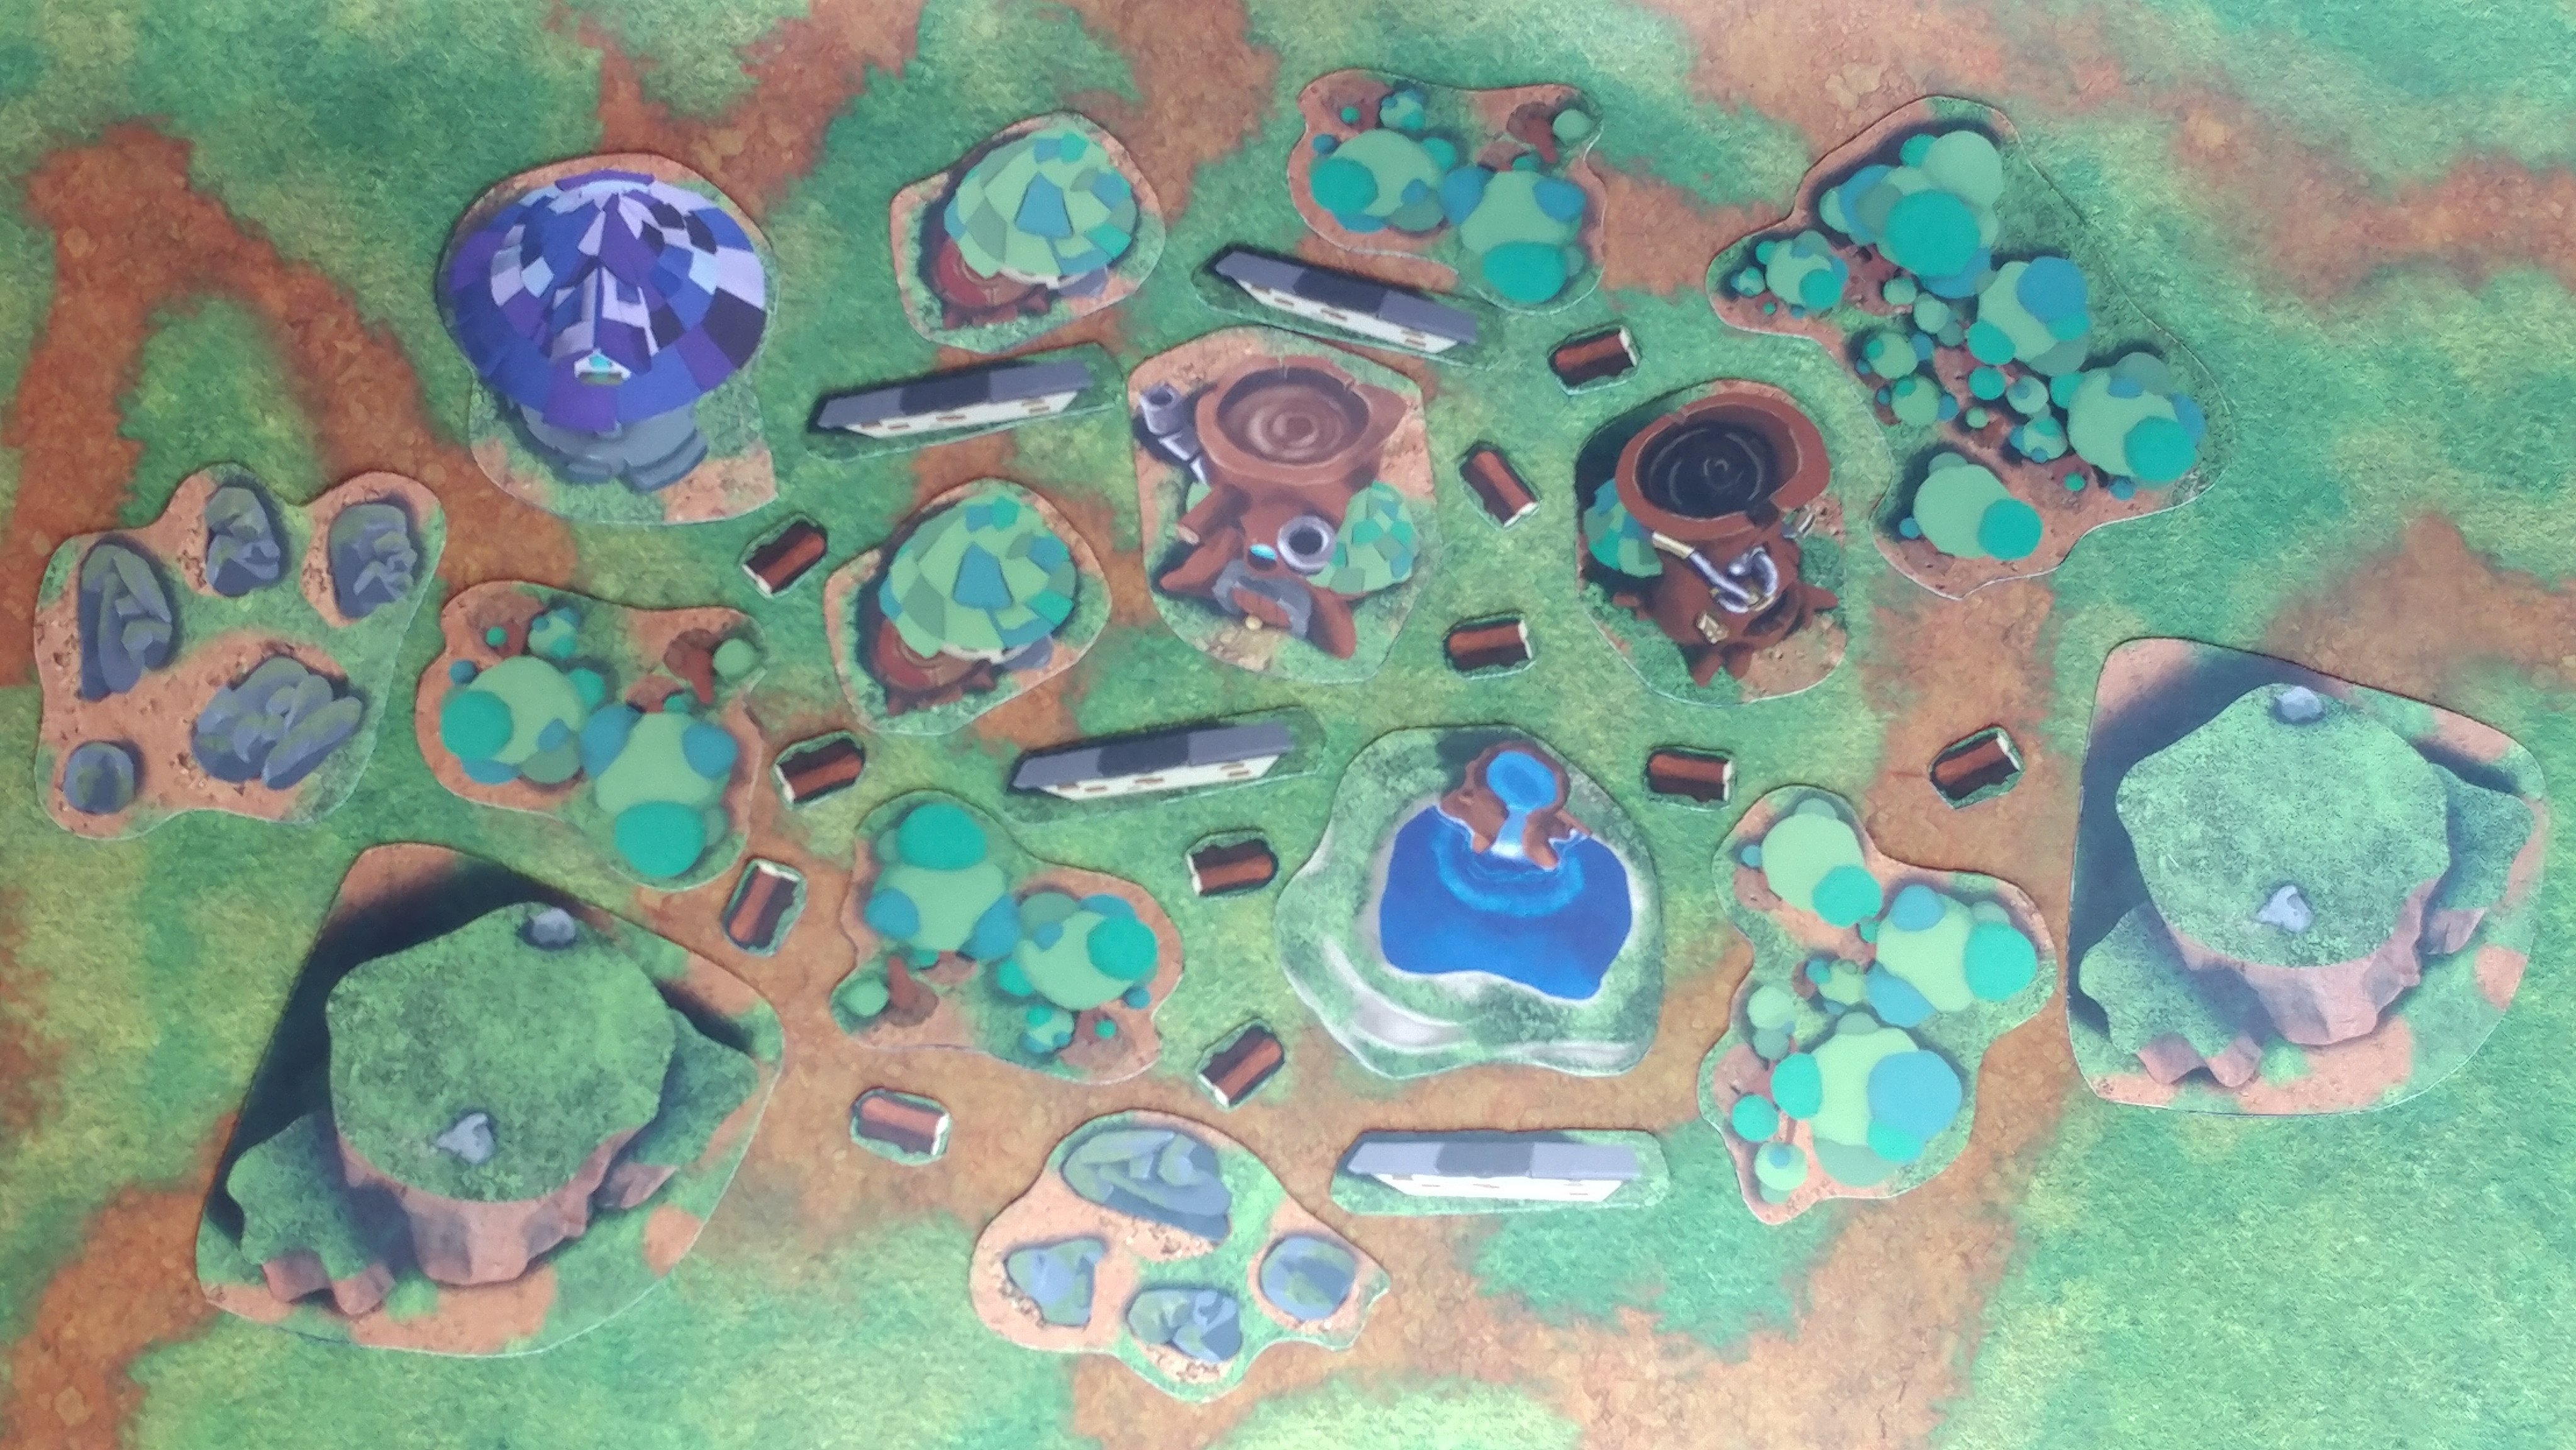 A look at the complete Earth and Arcane 2D Terrain set